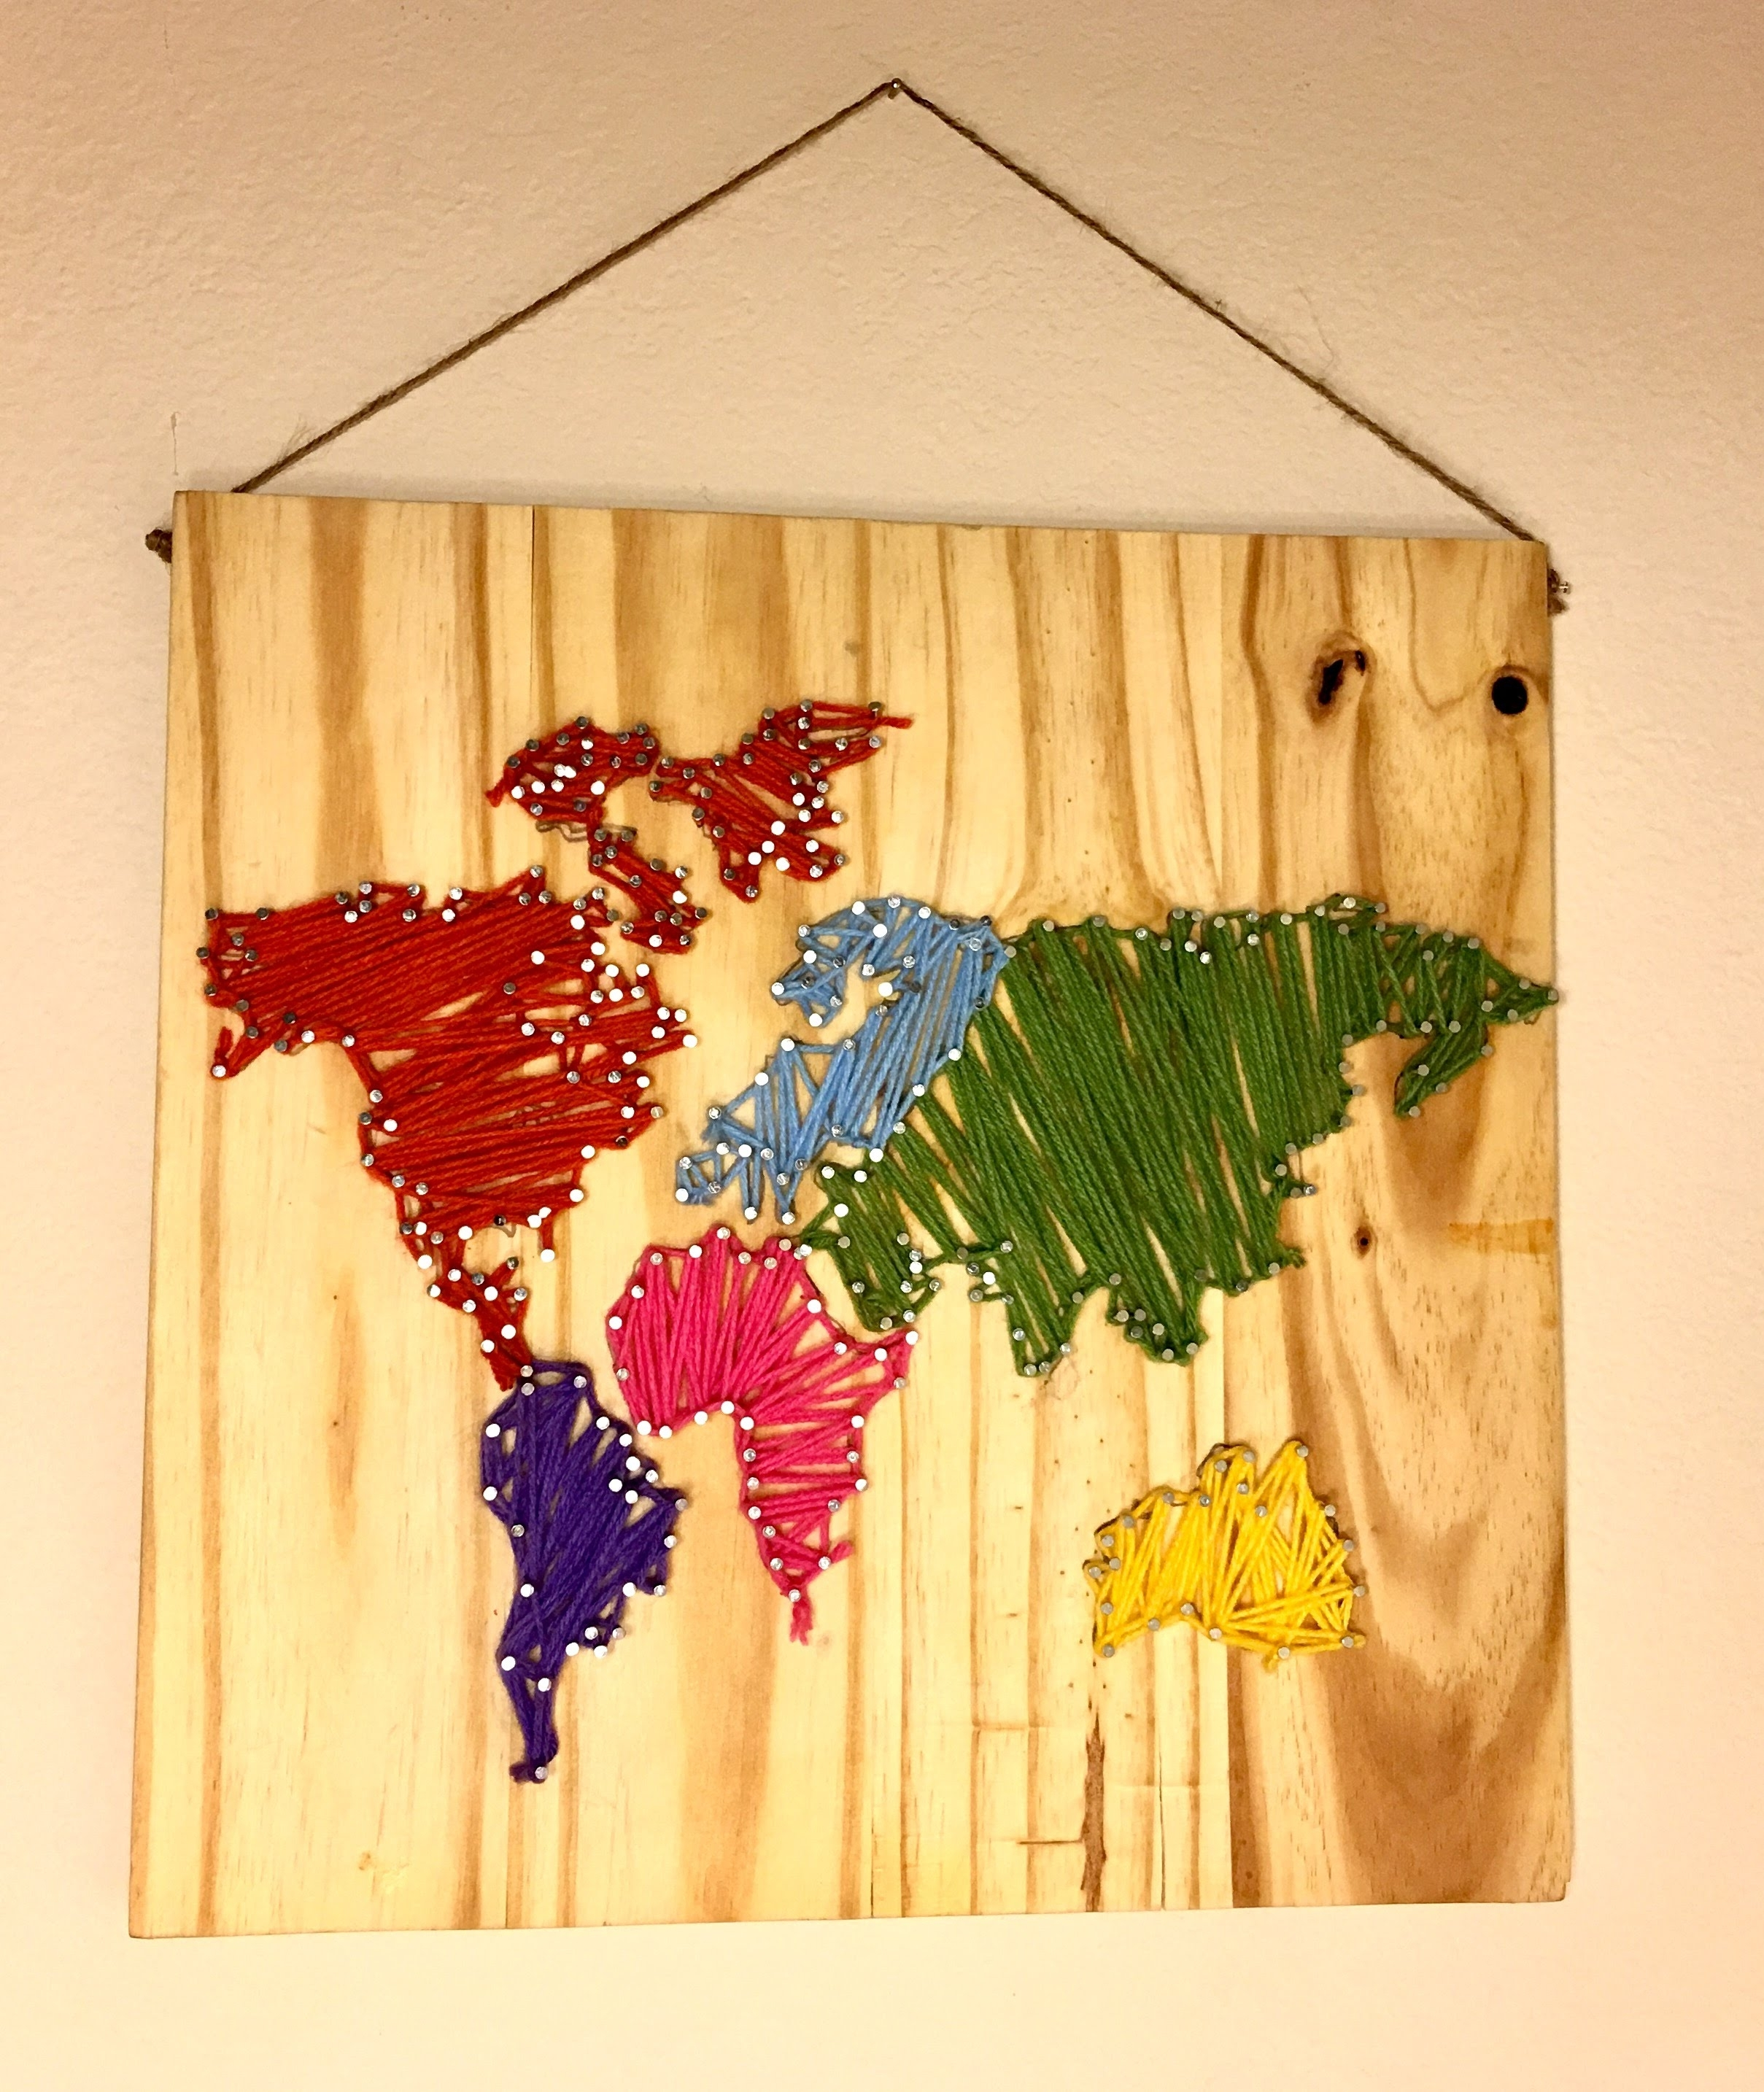 Diy World Map Wall Nail String Art [Timelapse] – Youtube Regarding String Map Wall Art (View 5 of 20)